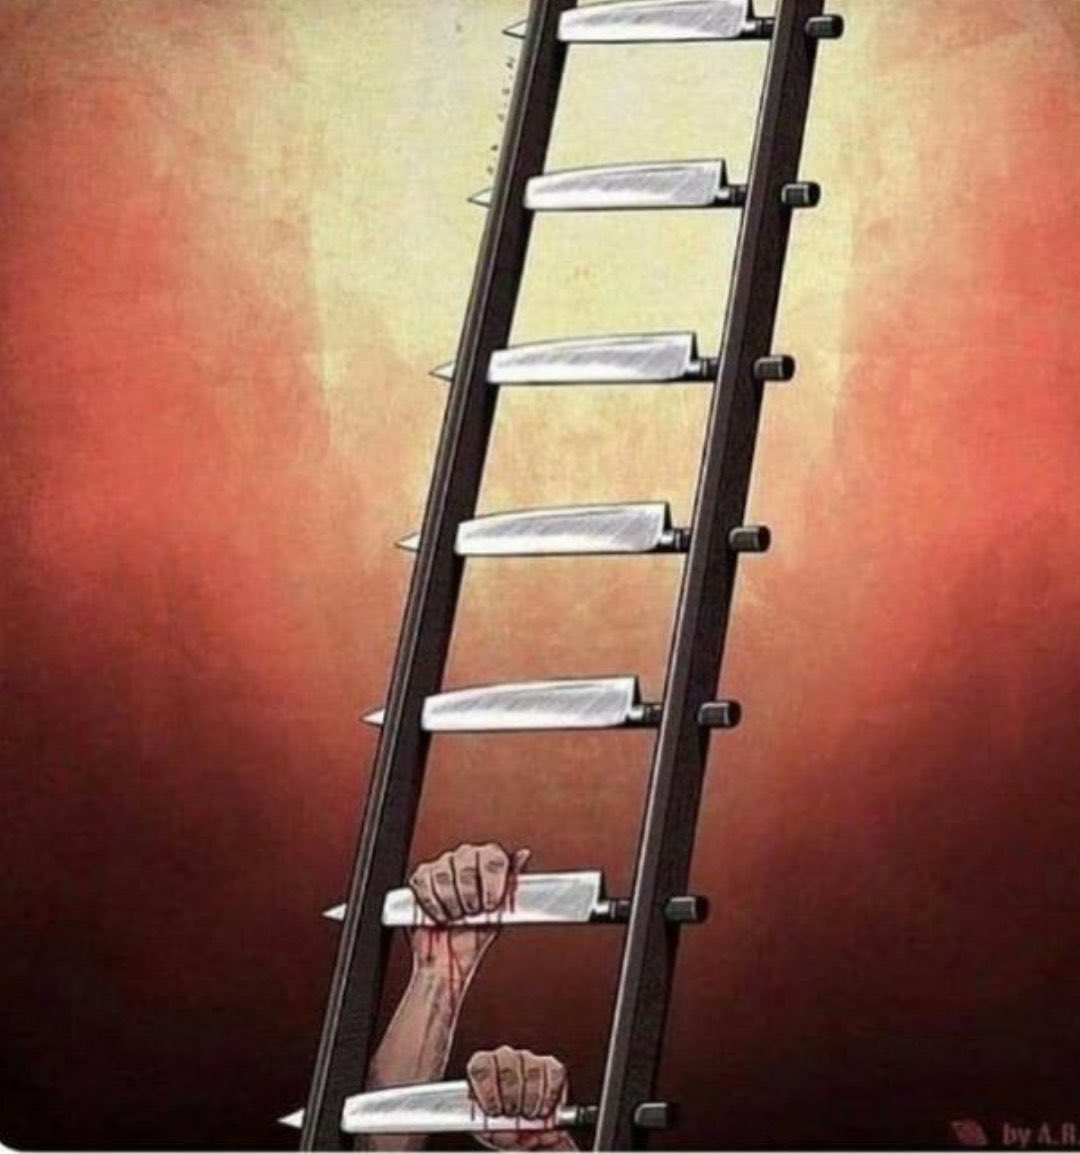 Climbing the ladder of #success.  This is very accurate, cause so many people make success harder then it needs to be. That's why we need to be #focused, #worksmart, #innovative think how to #improve the flow.   In the #process might find the solution/key and Flip the ladderpic.twitter.com/AeB9KlqS3e